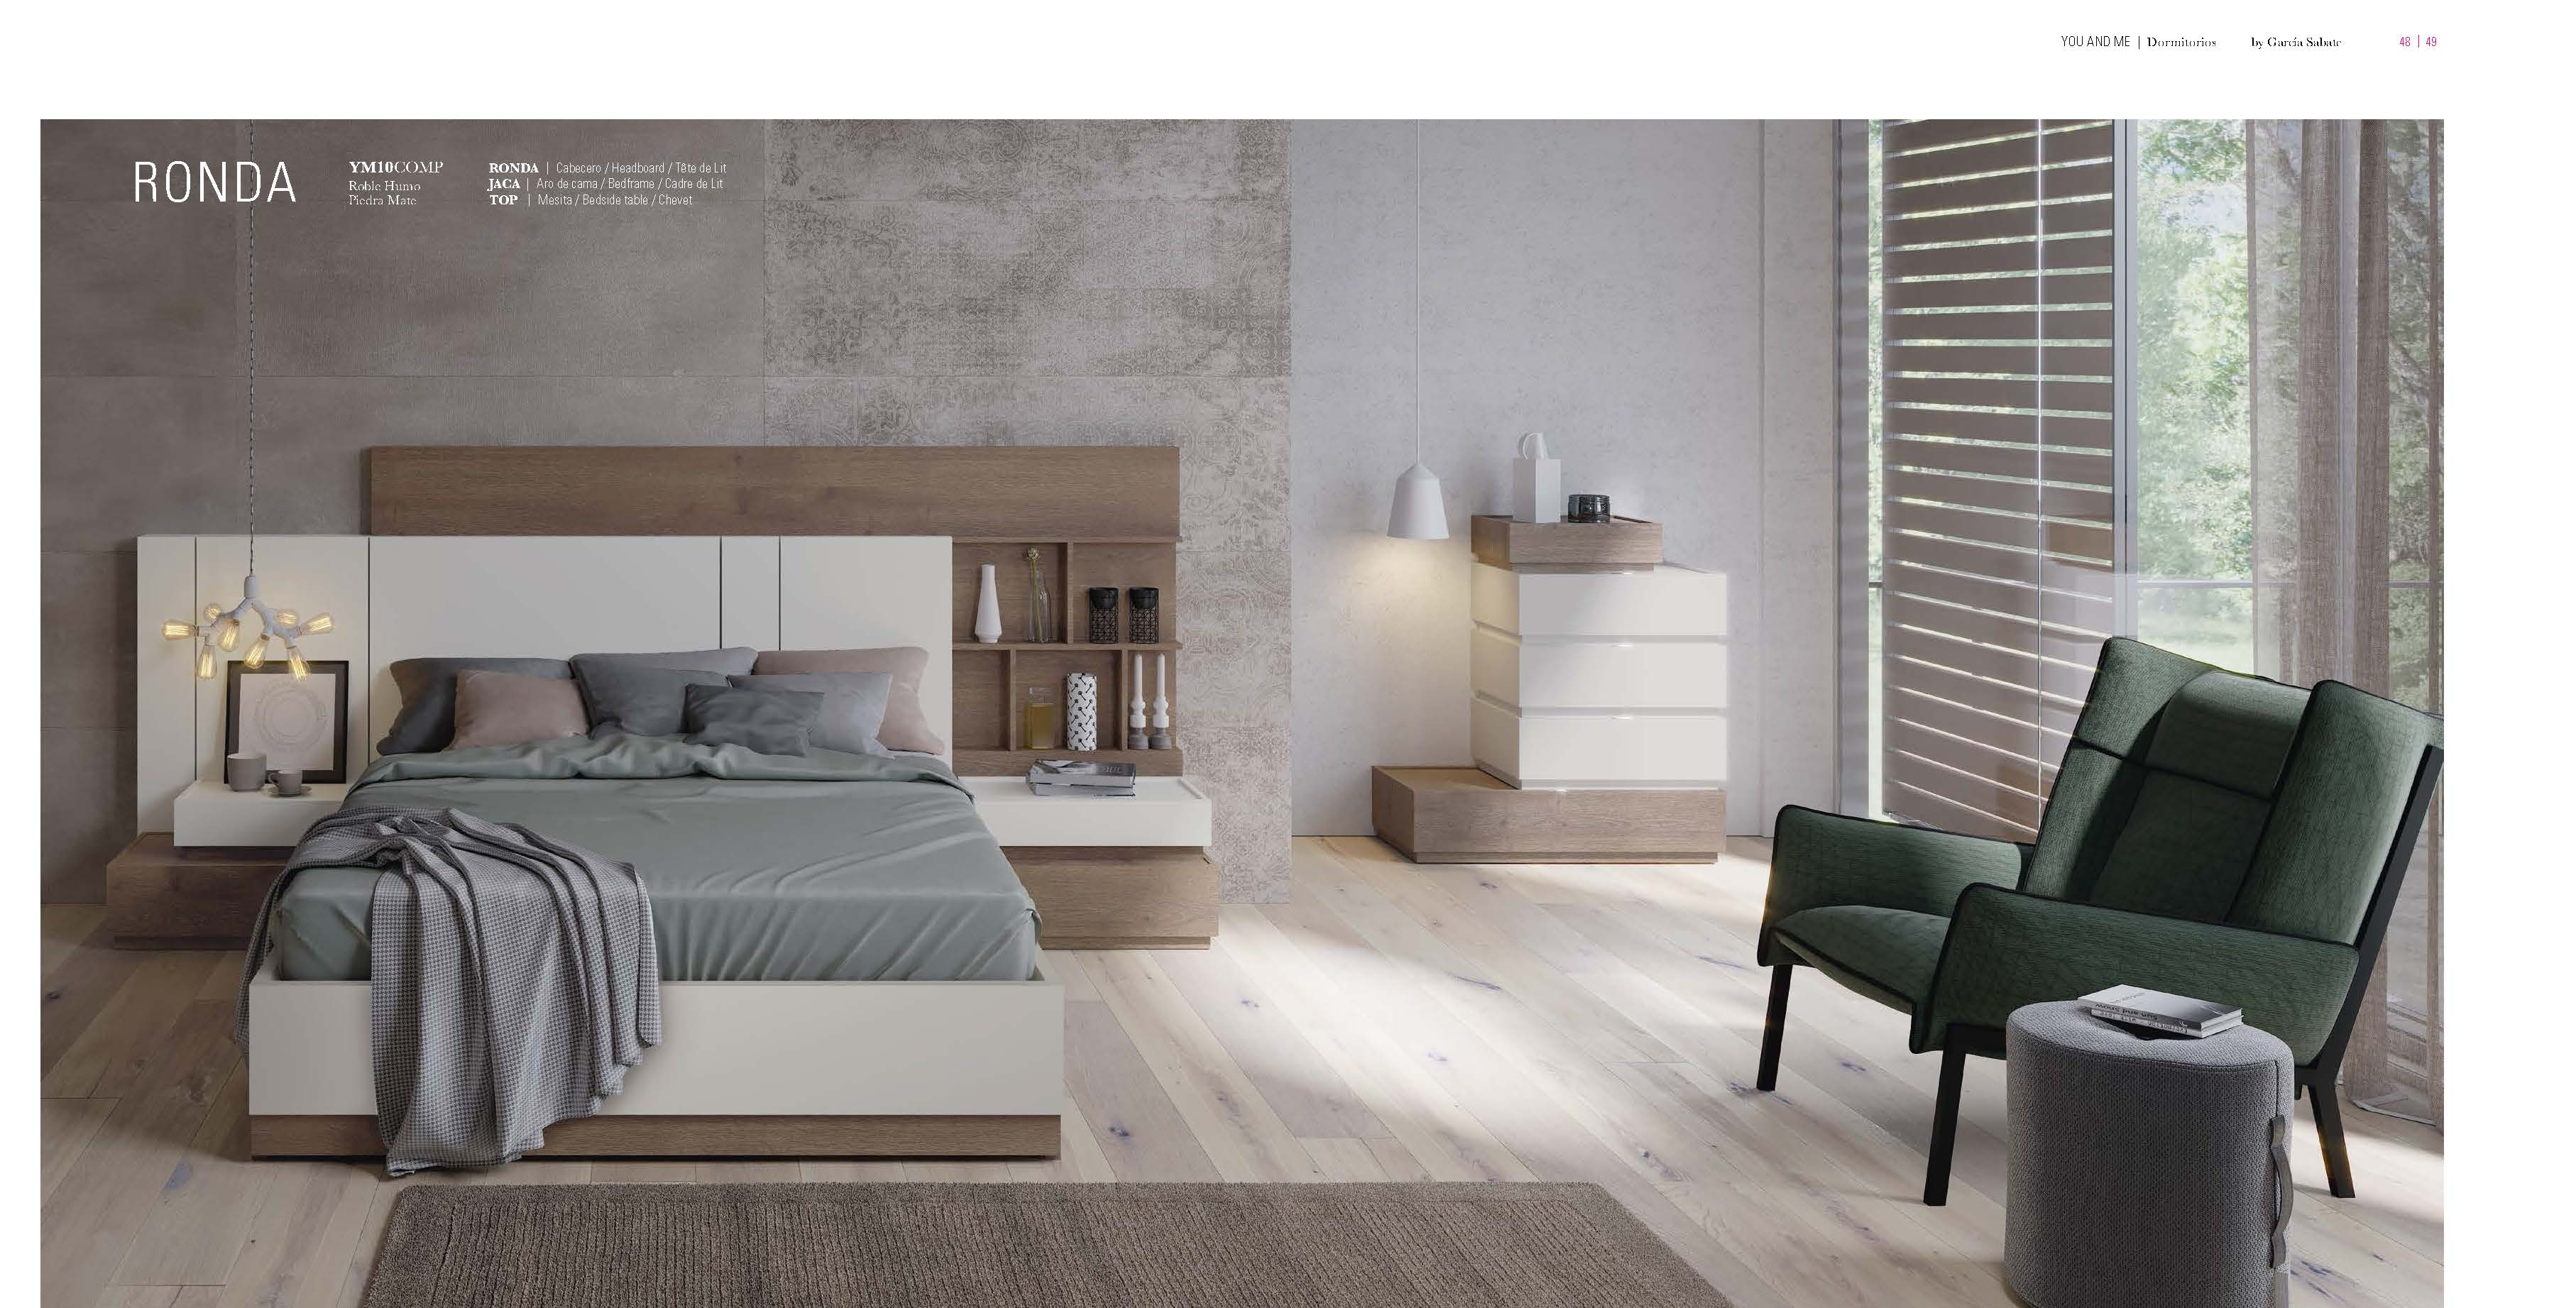 Brands Garcia Sabate, Modern Bedroom Spain YM10